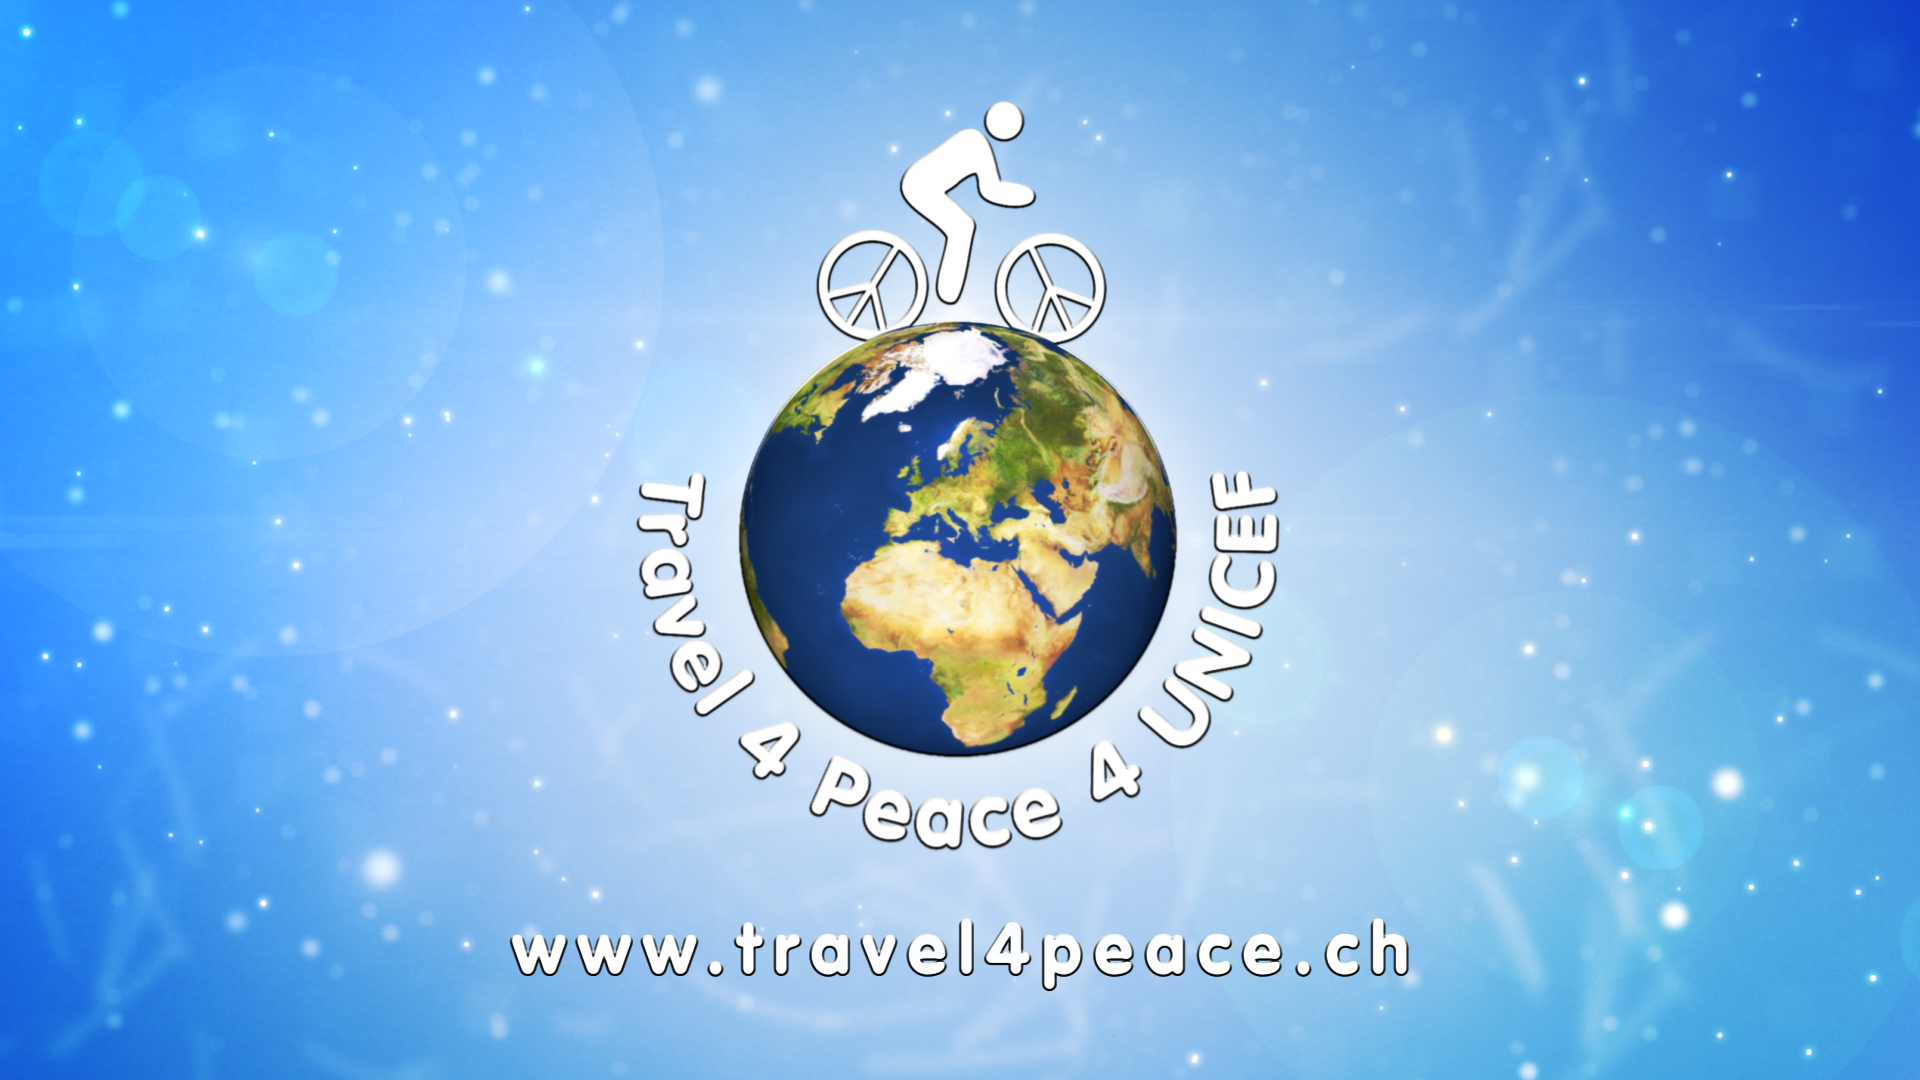 Trailer Travel4Peace